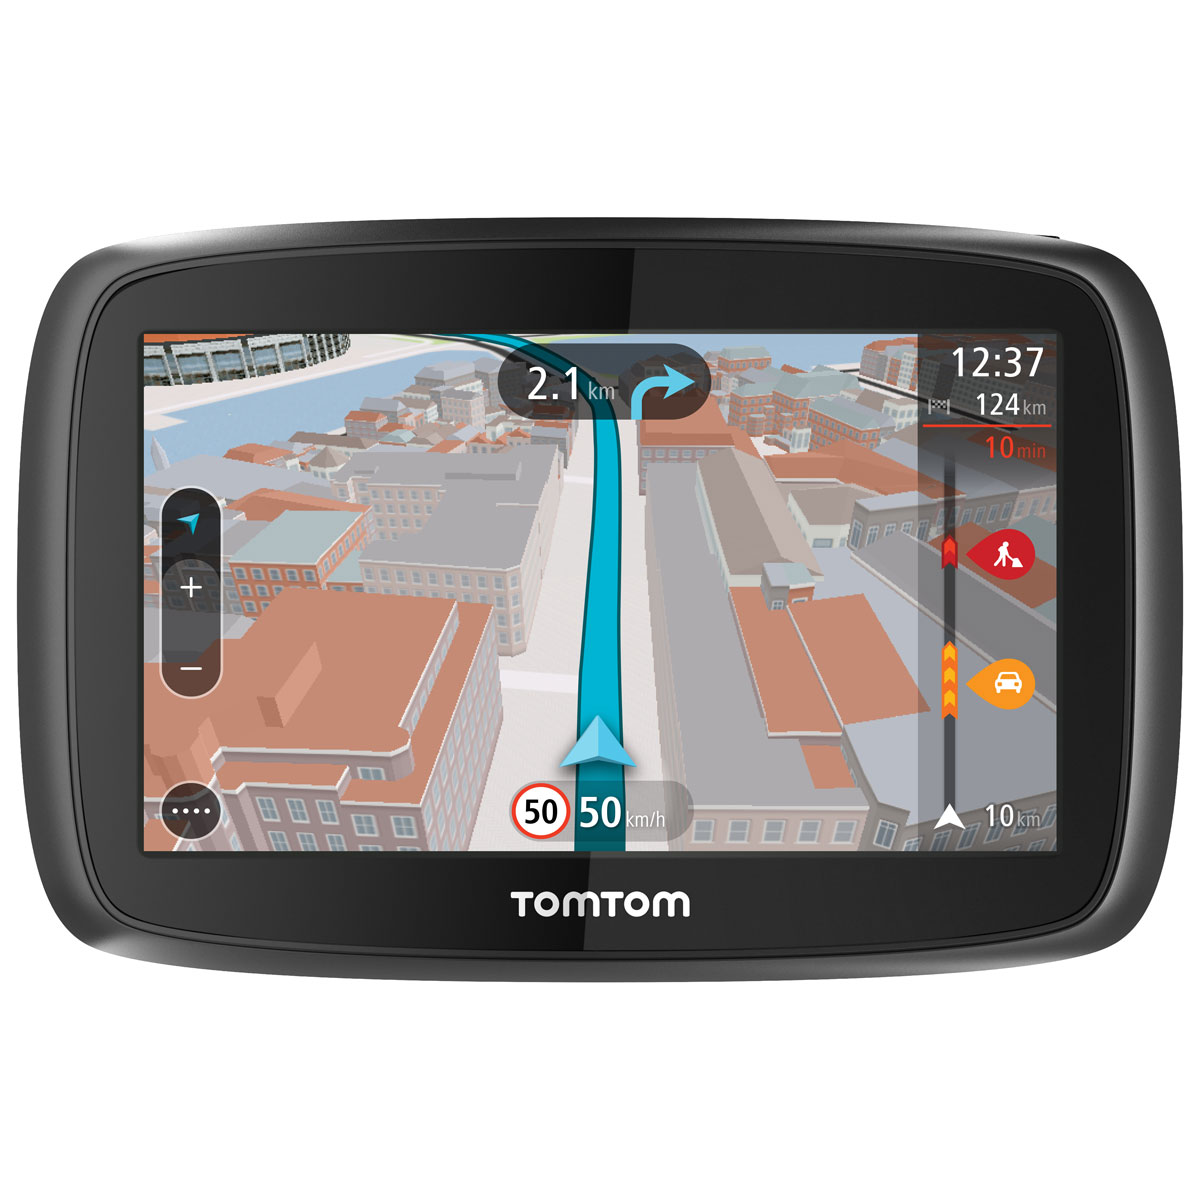 tomtom go 500 gps tomtom sur ldlc. Black Bedroom Furniture Sets. Home Design Ideas